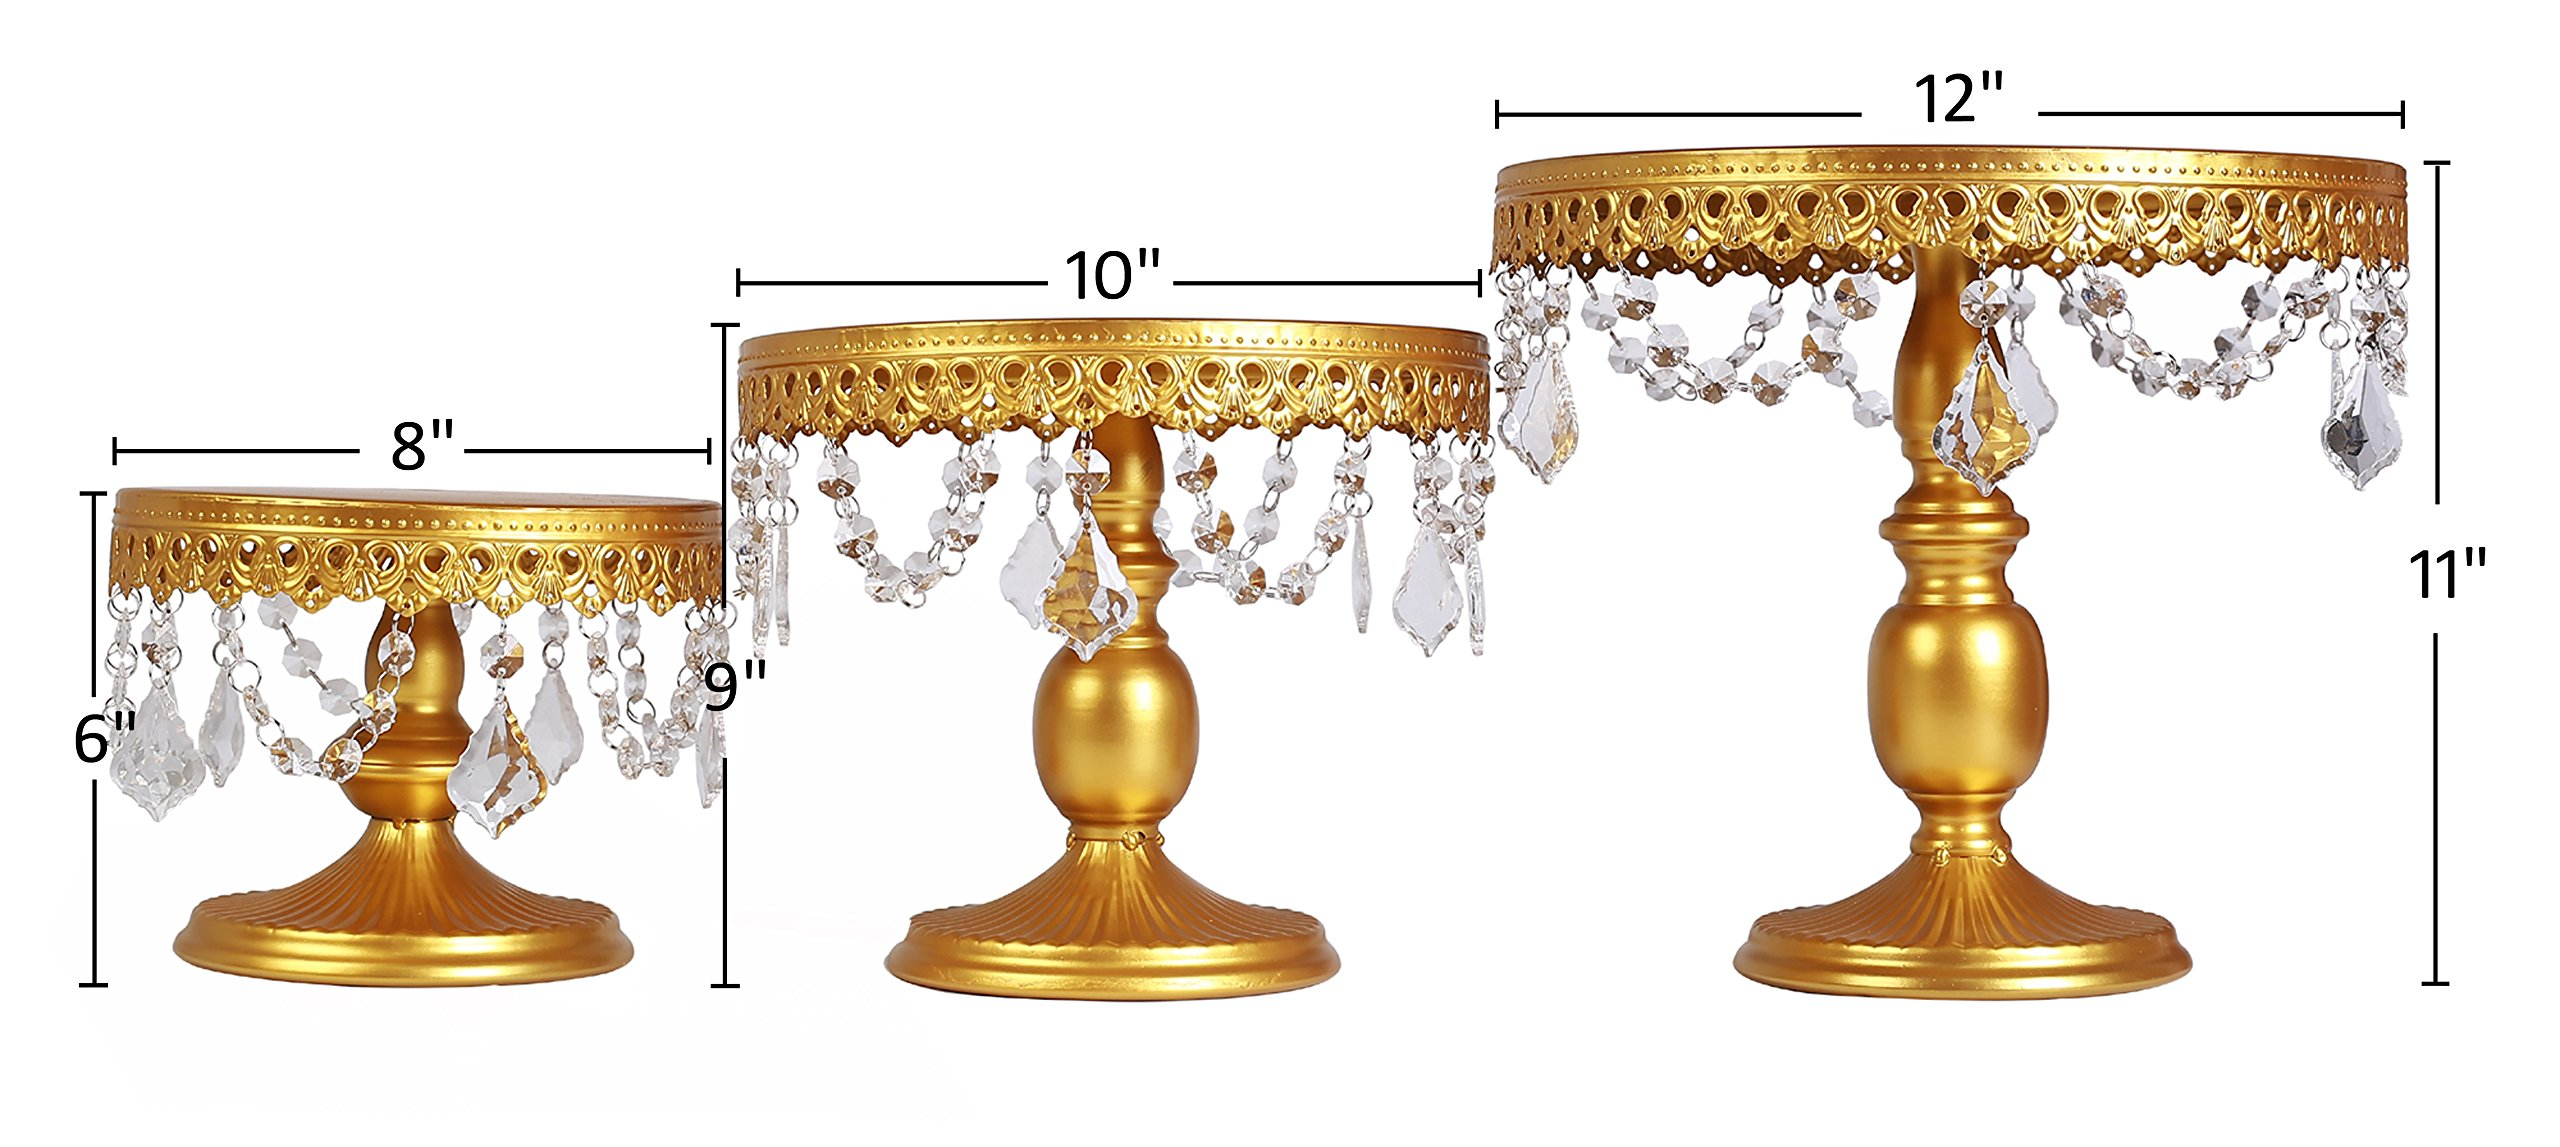 VILAVITA 3-Set Antique Cake Stand Round Cupcake Stands Metal Dessert Display with Pendants and Beads, Gold by VILAVITA (Image #3)